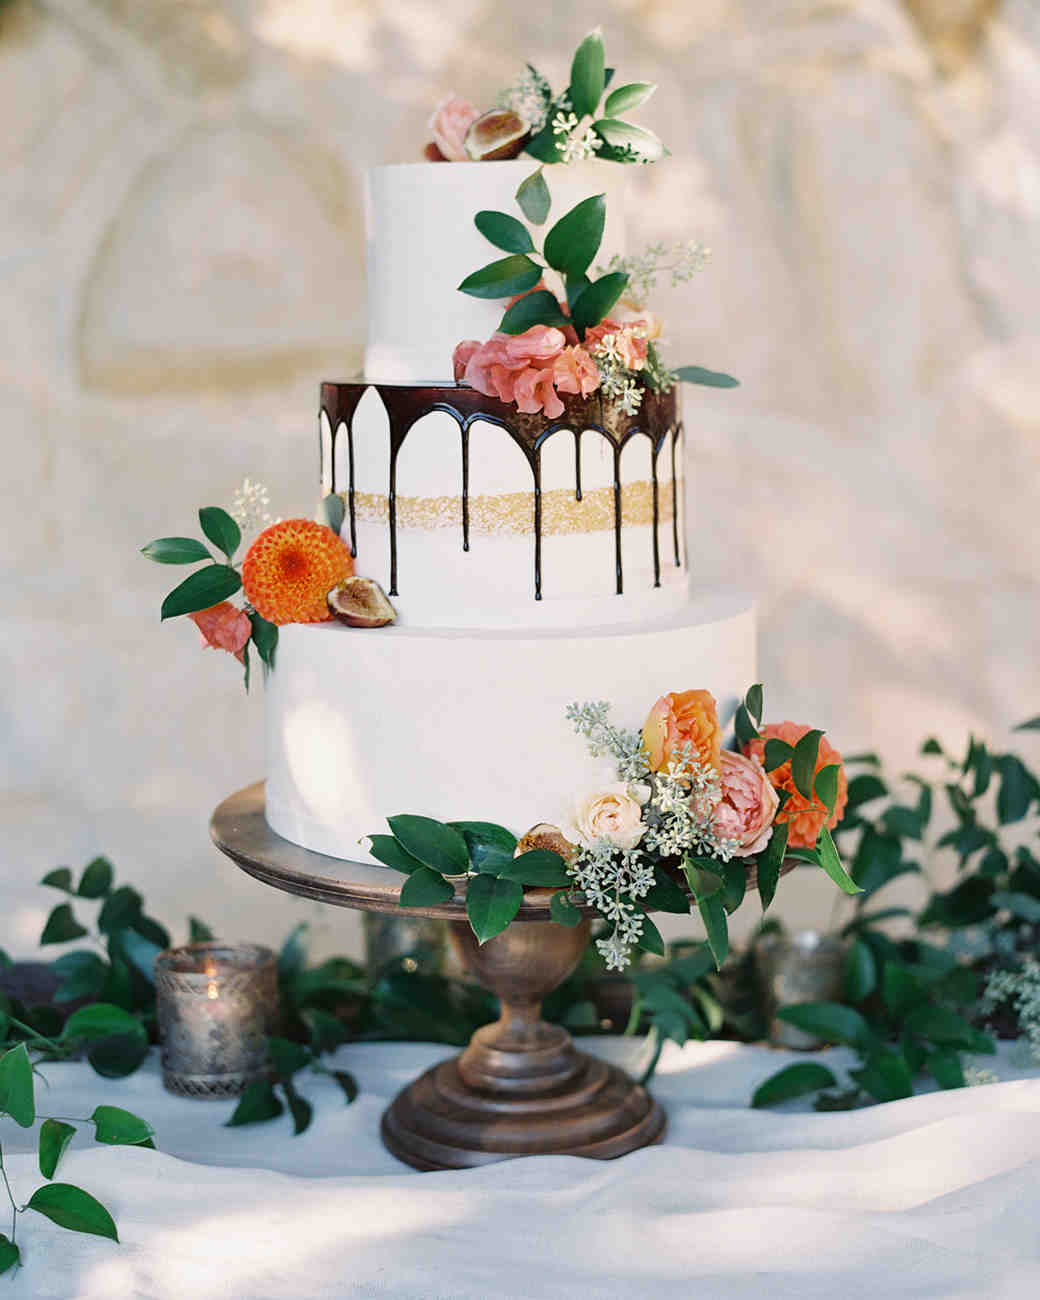 laurie michael wedding cake